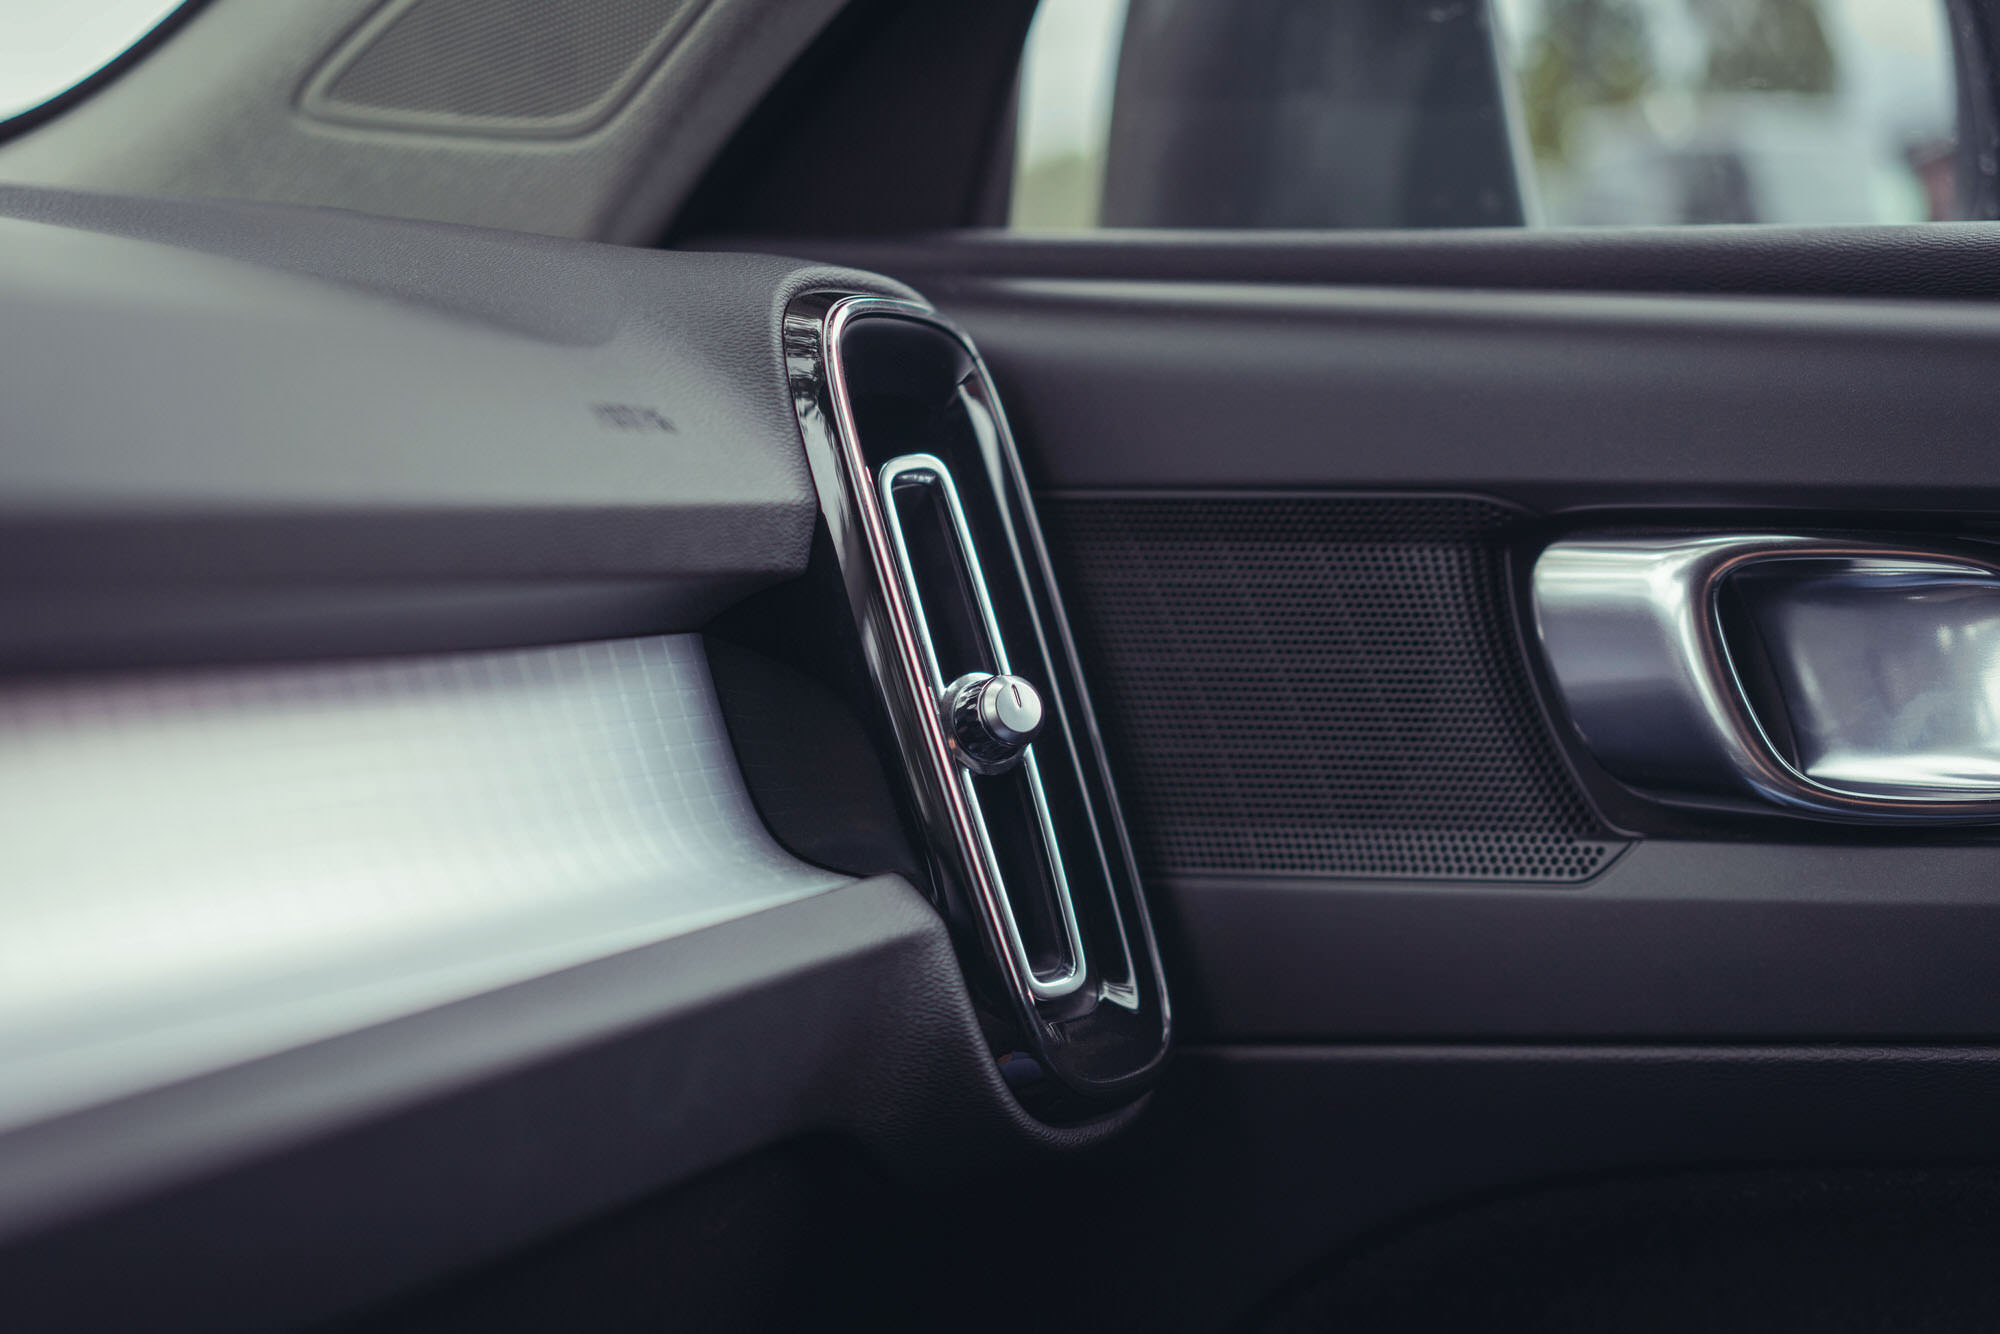 Interior air vent details of Volvo XC40